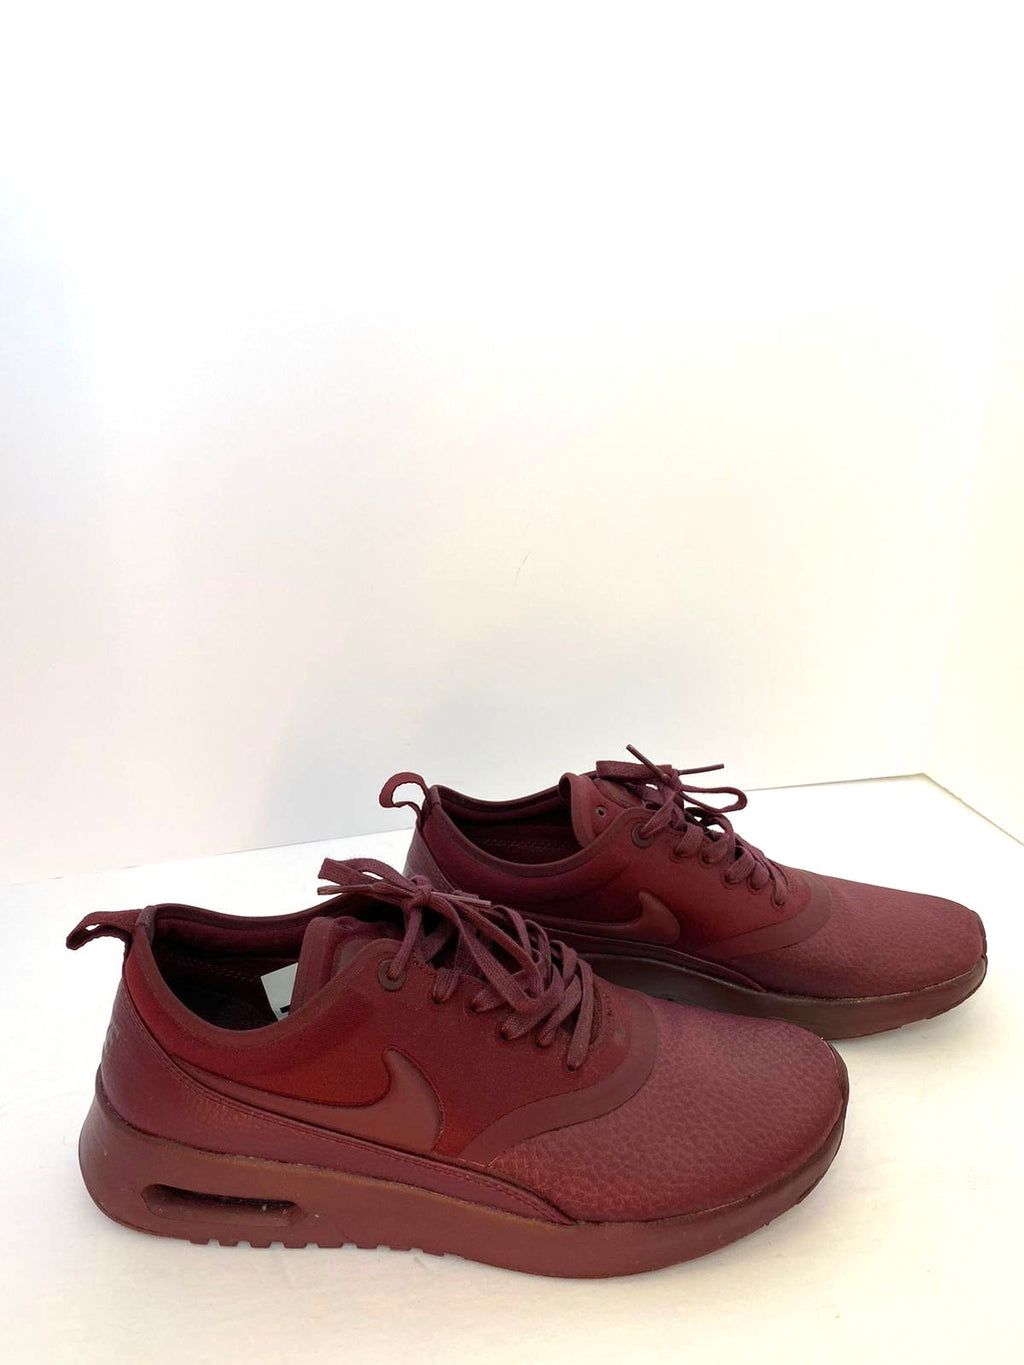 Nike Air Max Maroon Sneakers Size 8